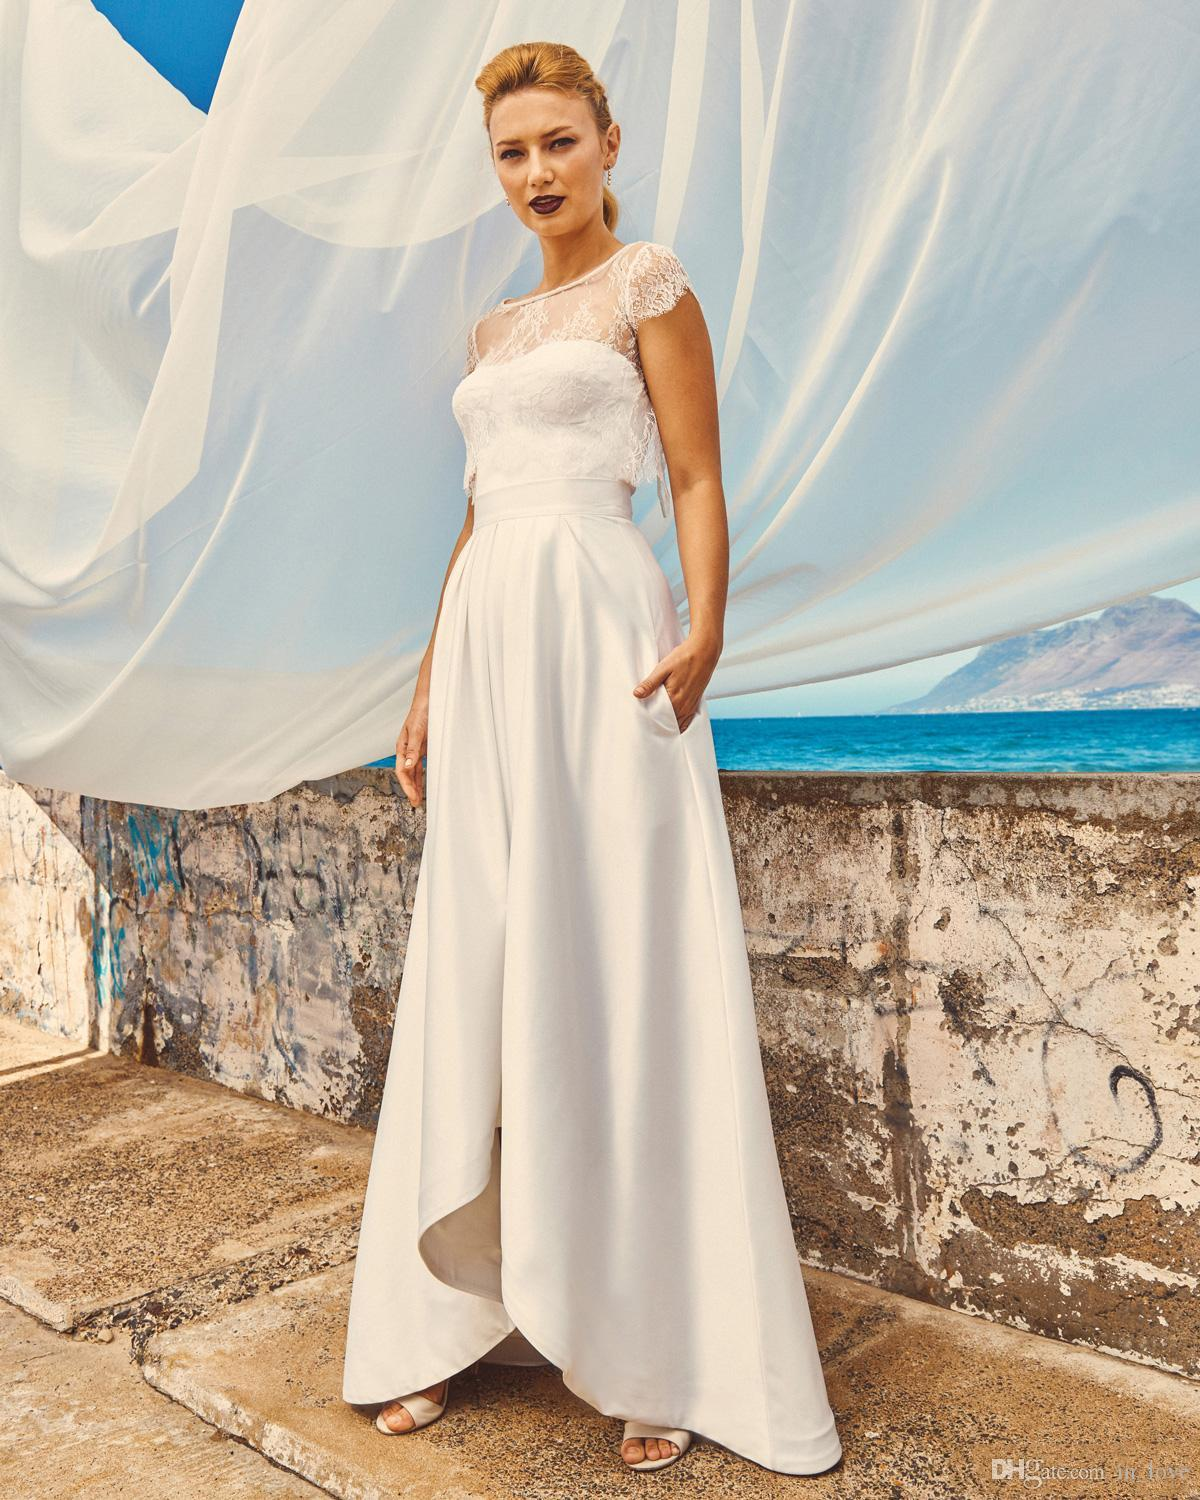 Discount High Low Wedding Dress With Pockets Lace Jacket Bolero Cap Sleeve Boat Neck Short Front Long Back Bridal Gowns 2020 Beach Wedding Online Dresses Vintage Lace Wedding Dresses From In Love 77 68,Stores To Buy Dresses For A Wedding